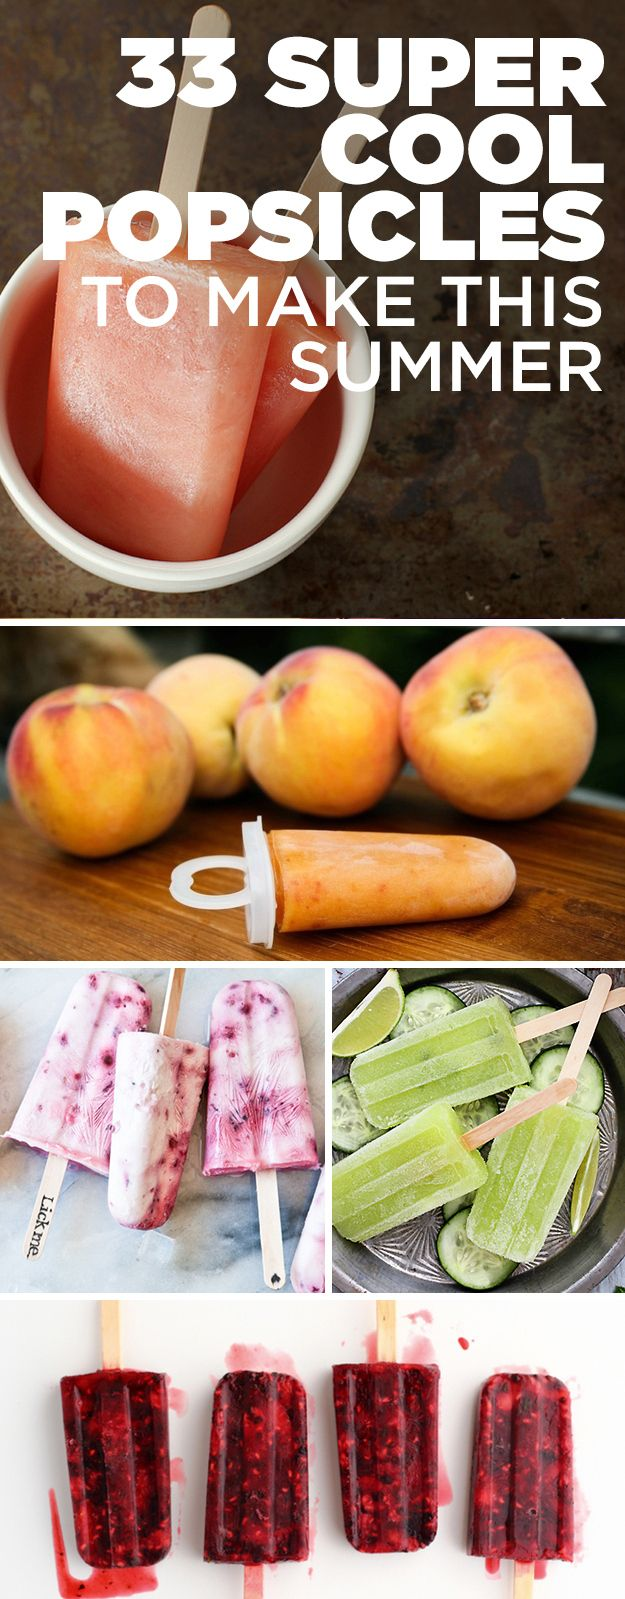 Popsicles to make this summer